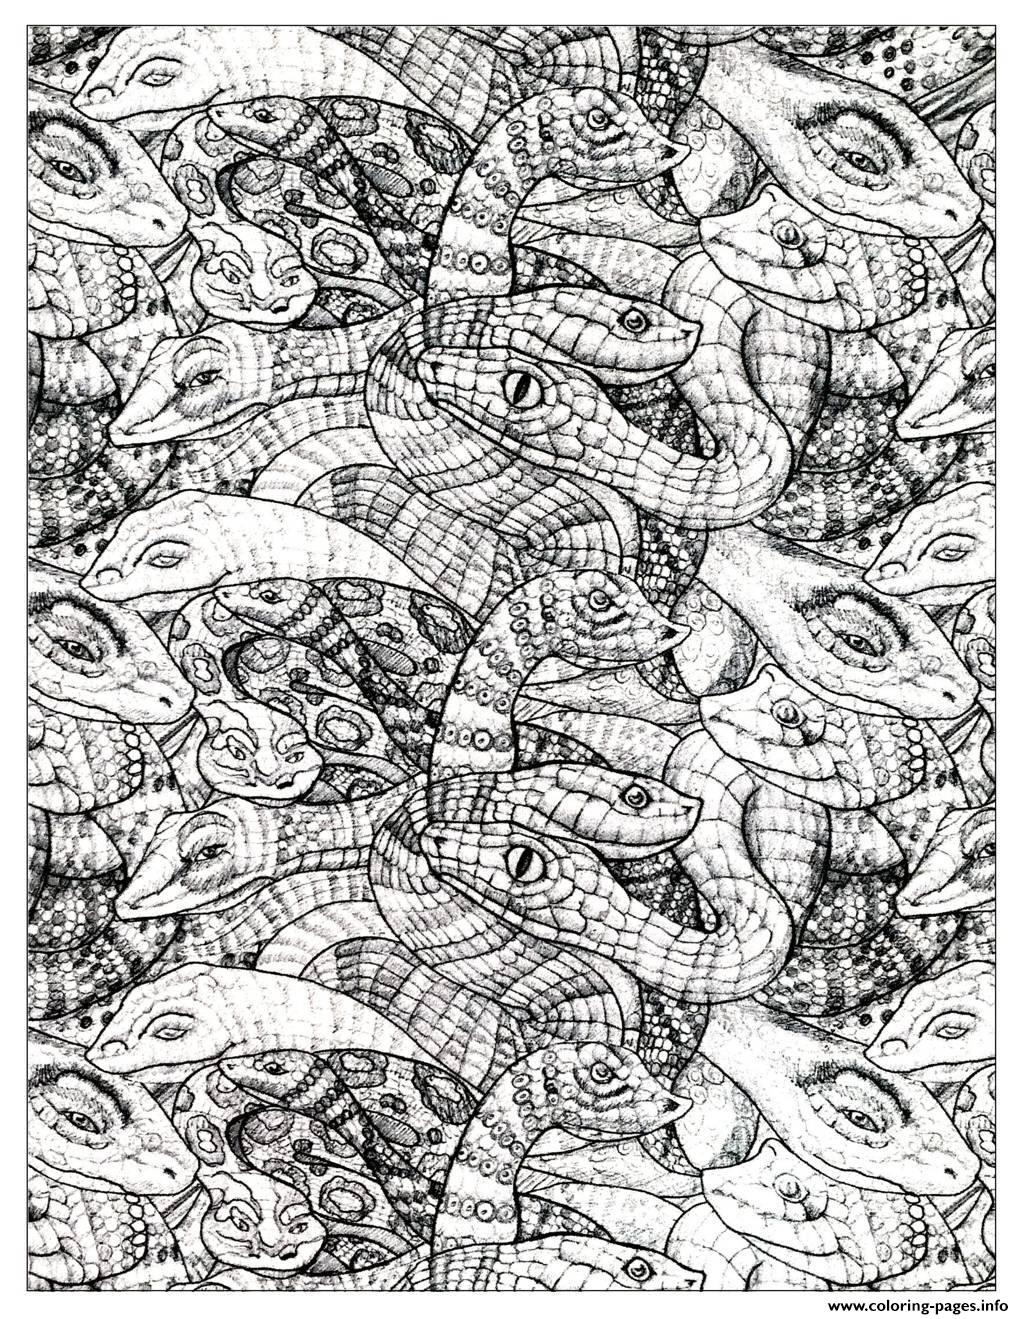 Free coloring pages snakes - Adult Snakes 2 Coloring Pages